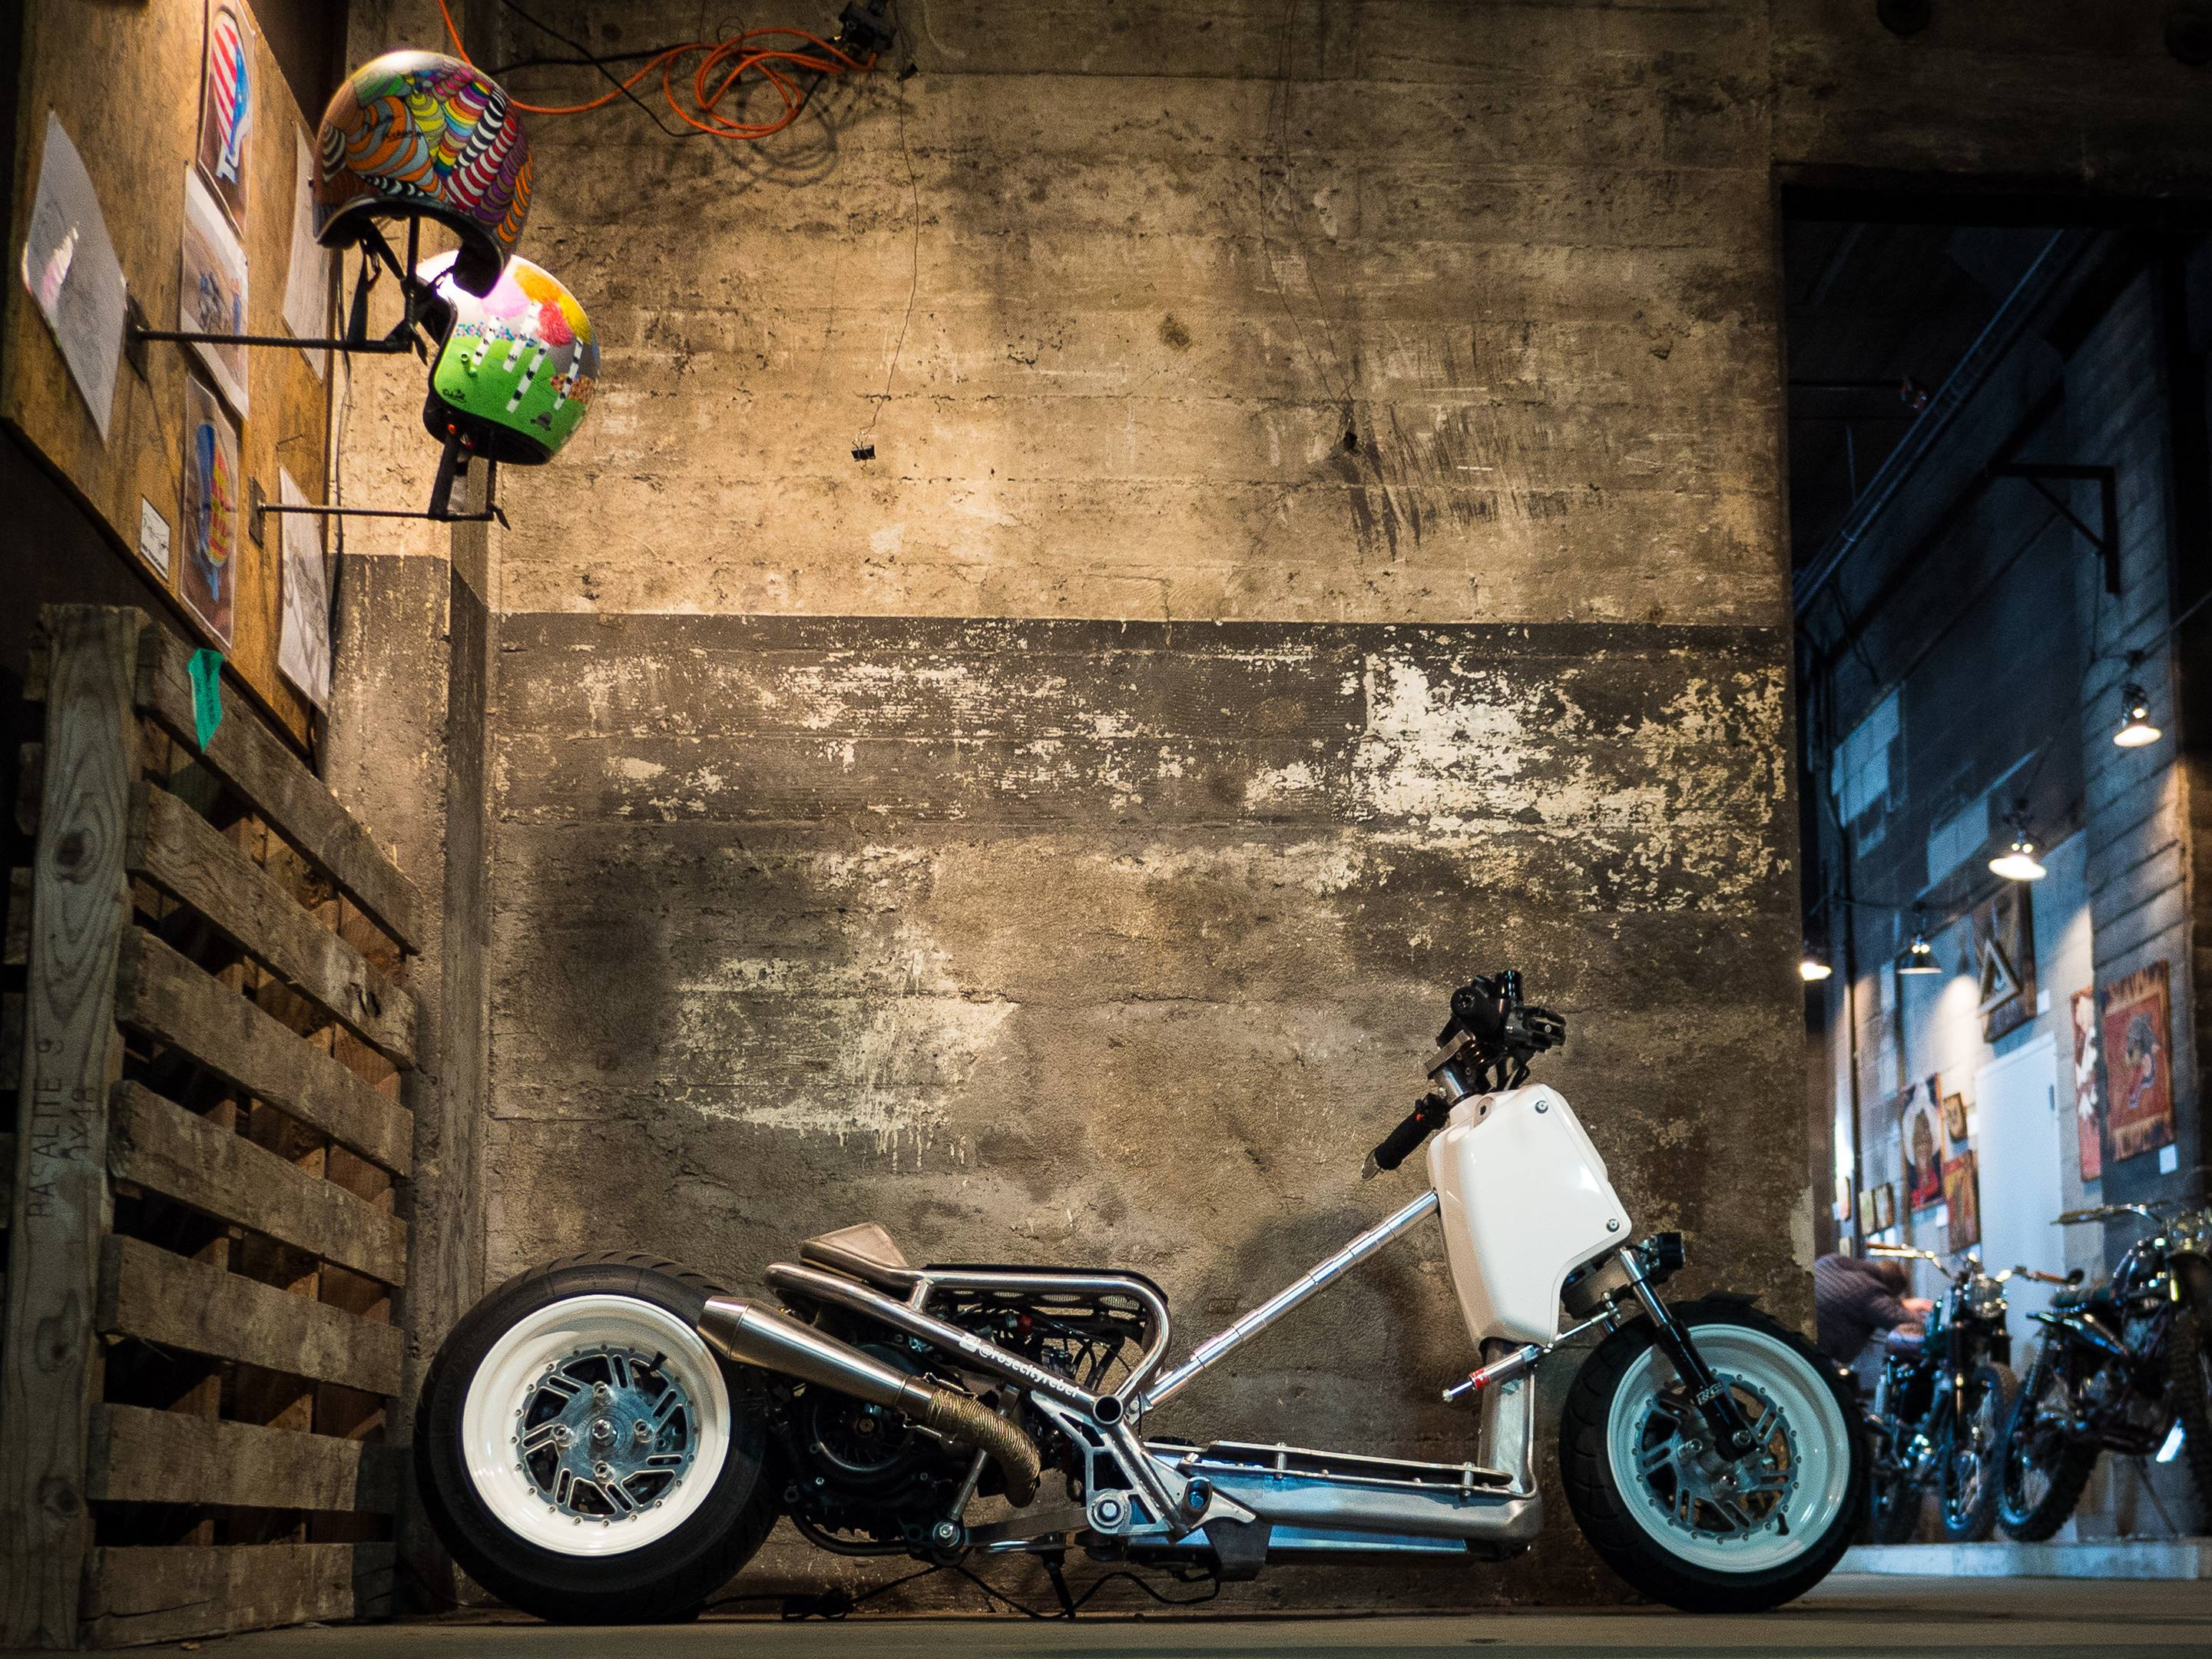 Motorcycles weren't the only customs on display at 1Moto. This 2008 Honda Ruckus rocked a mean lowrider look